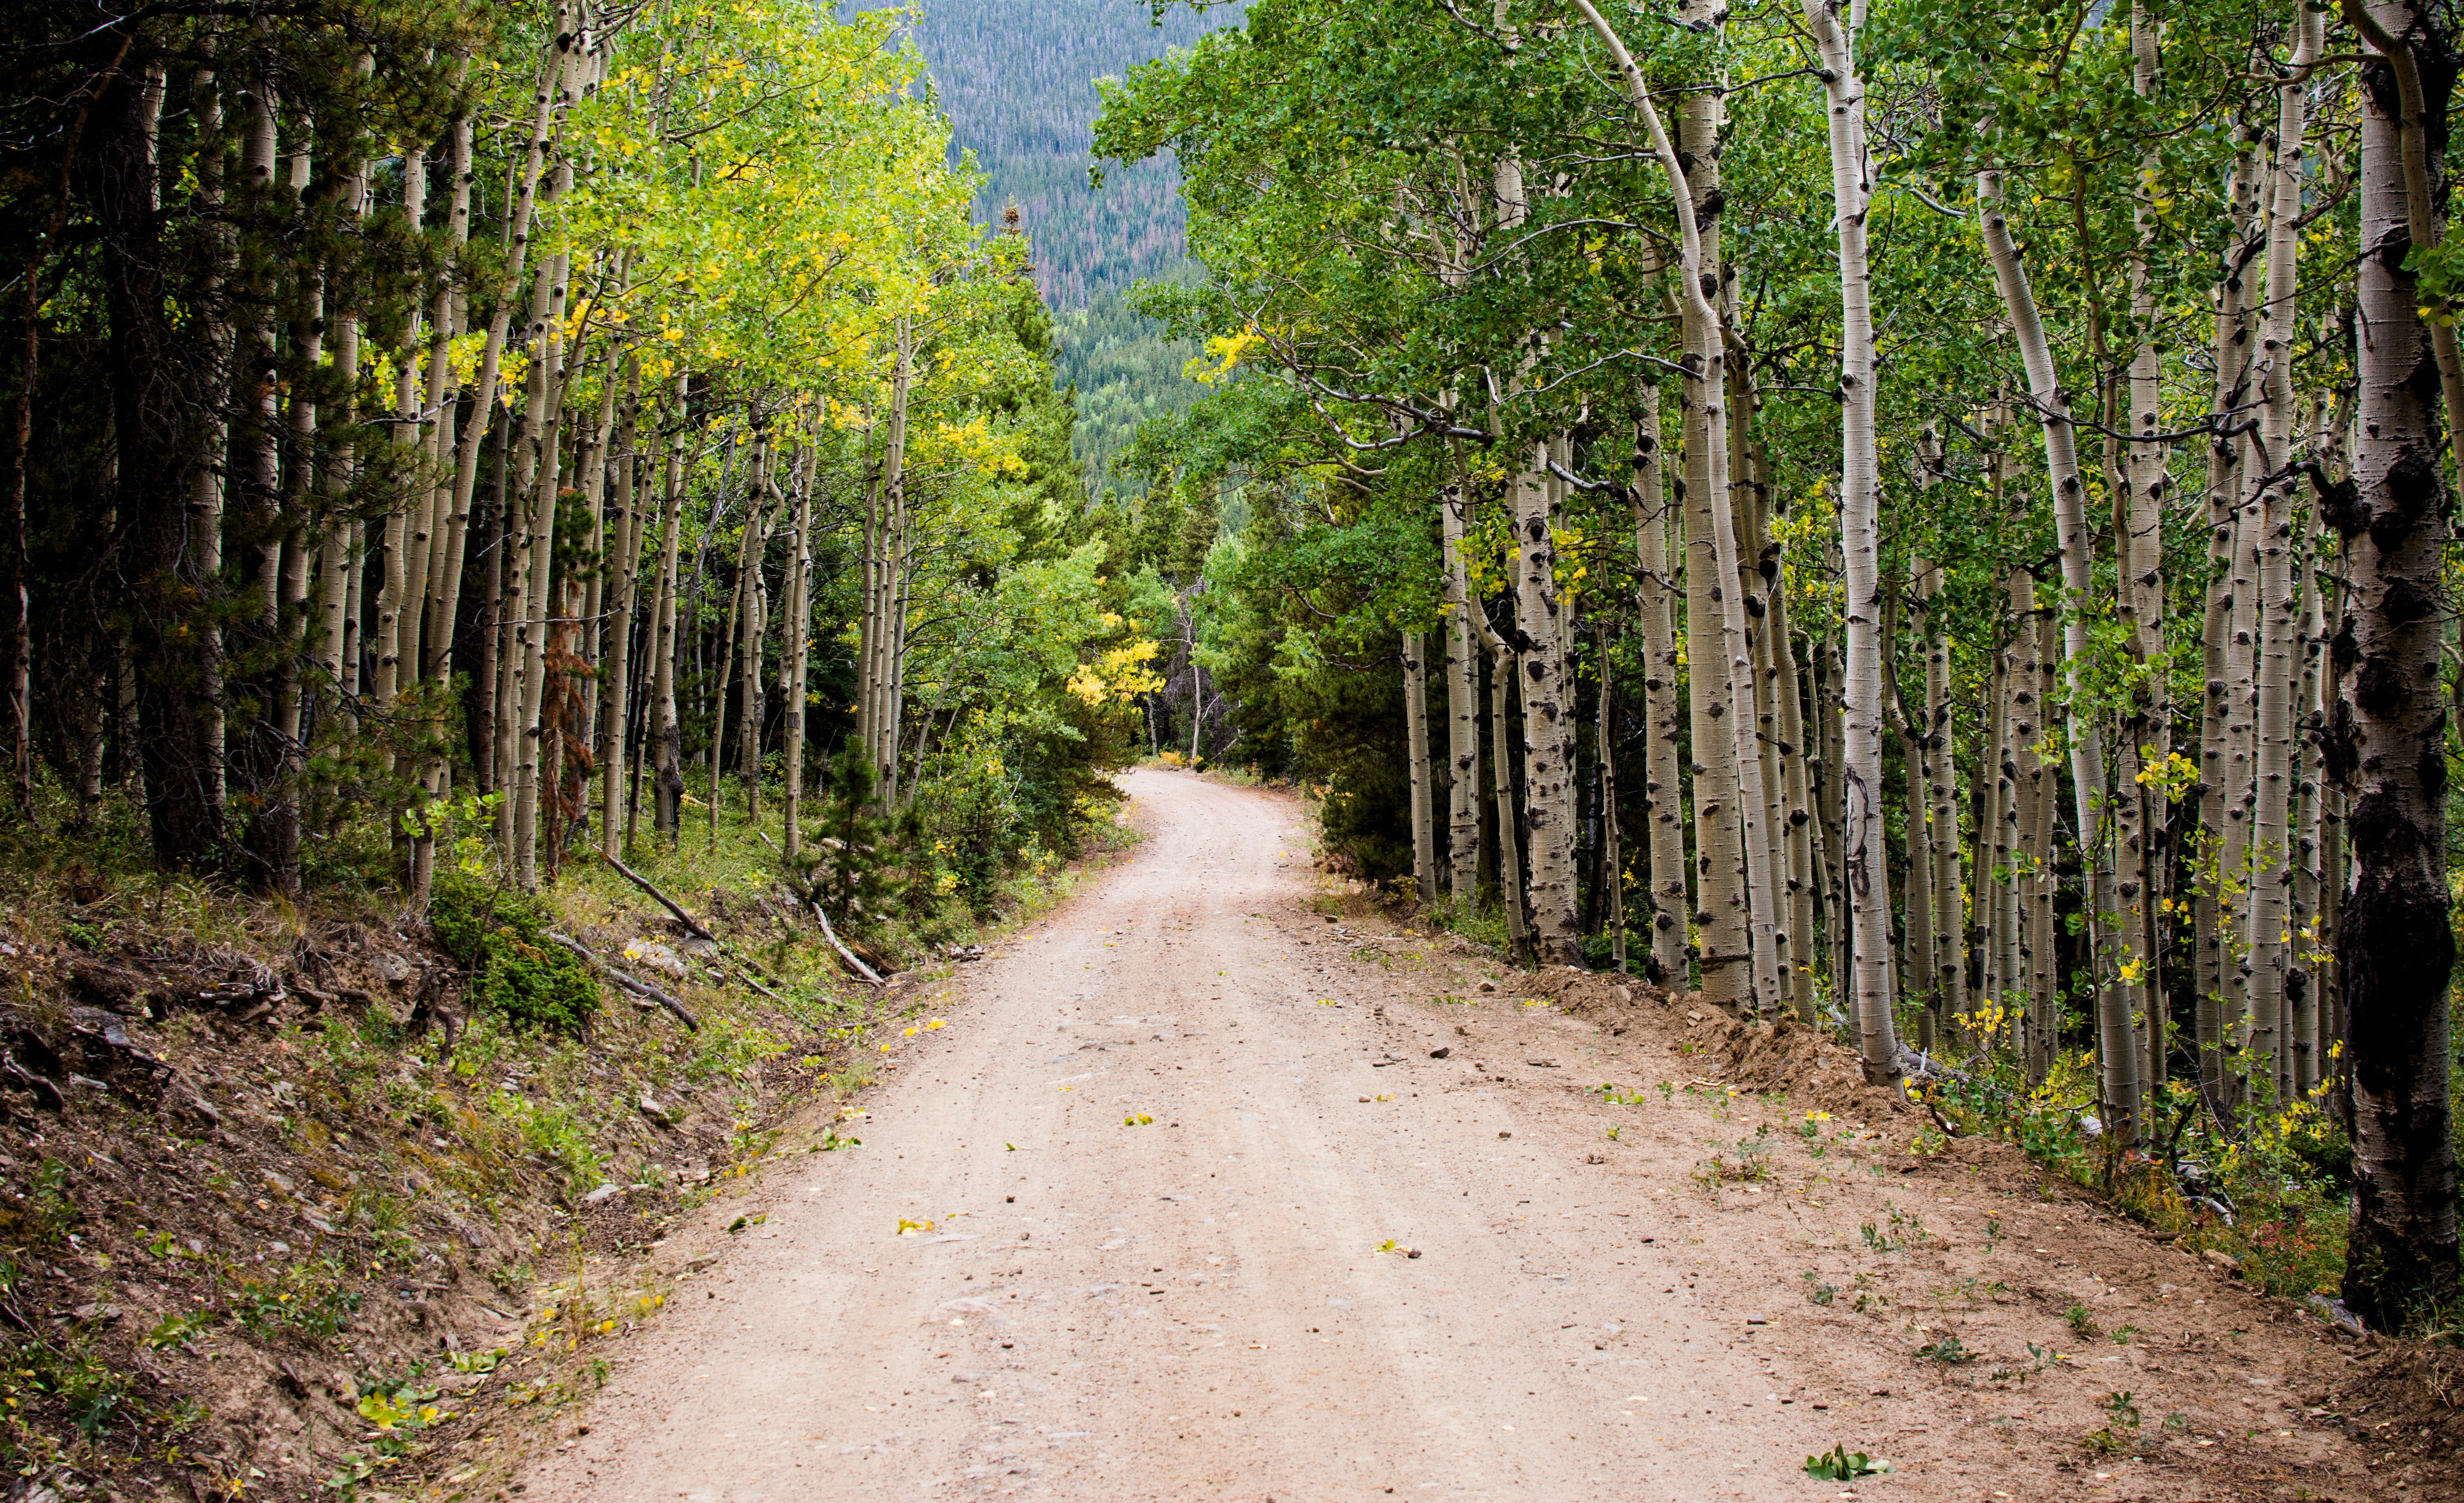 Empty road between birch trees during daytime photo